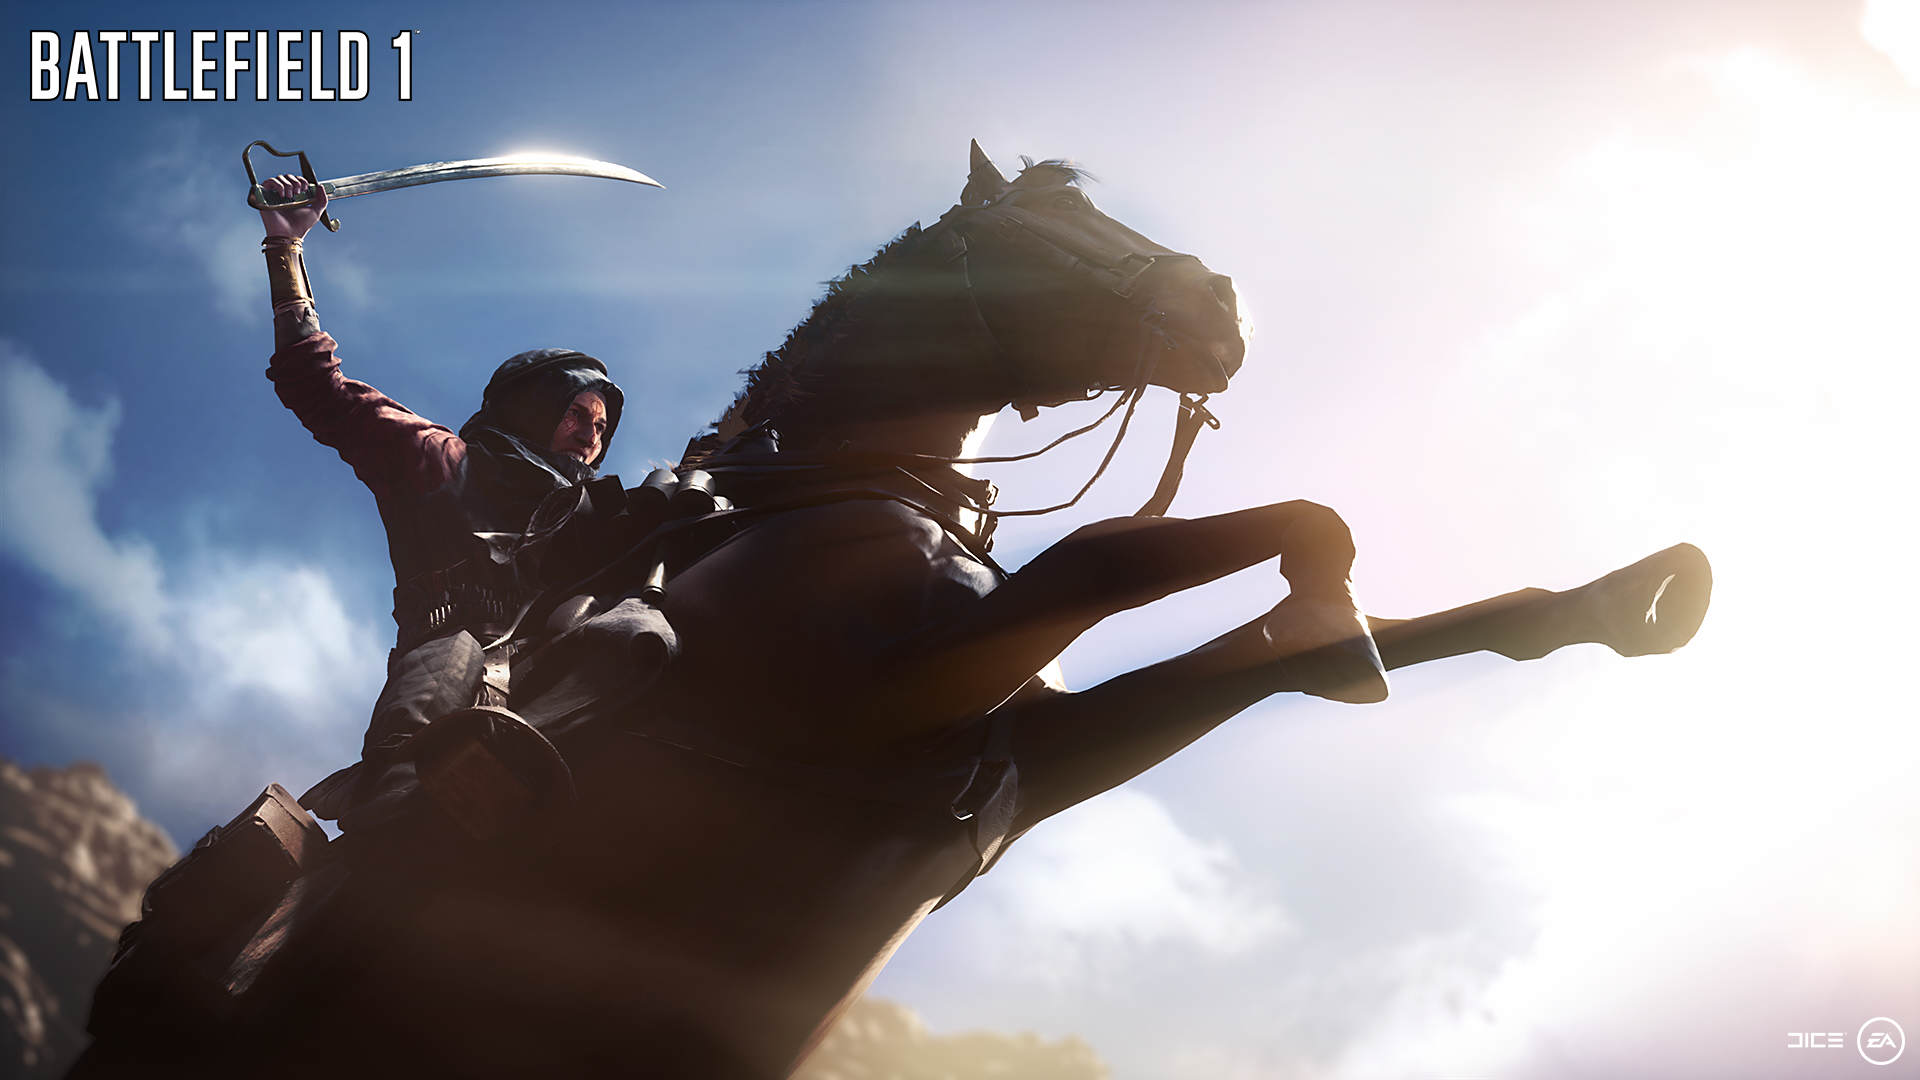 battlefield1 reveal 02 Battlefield 1 Announced, Takes Franchise Back To WW1